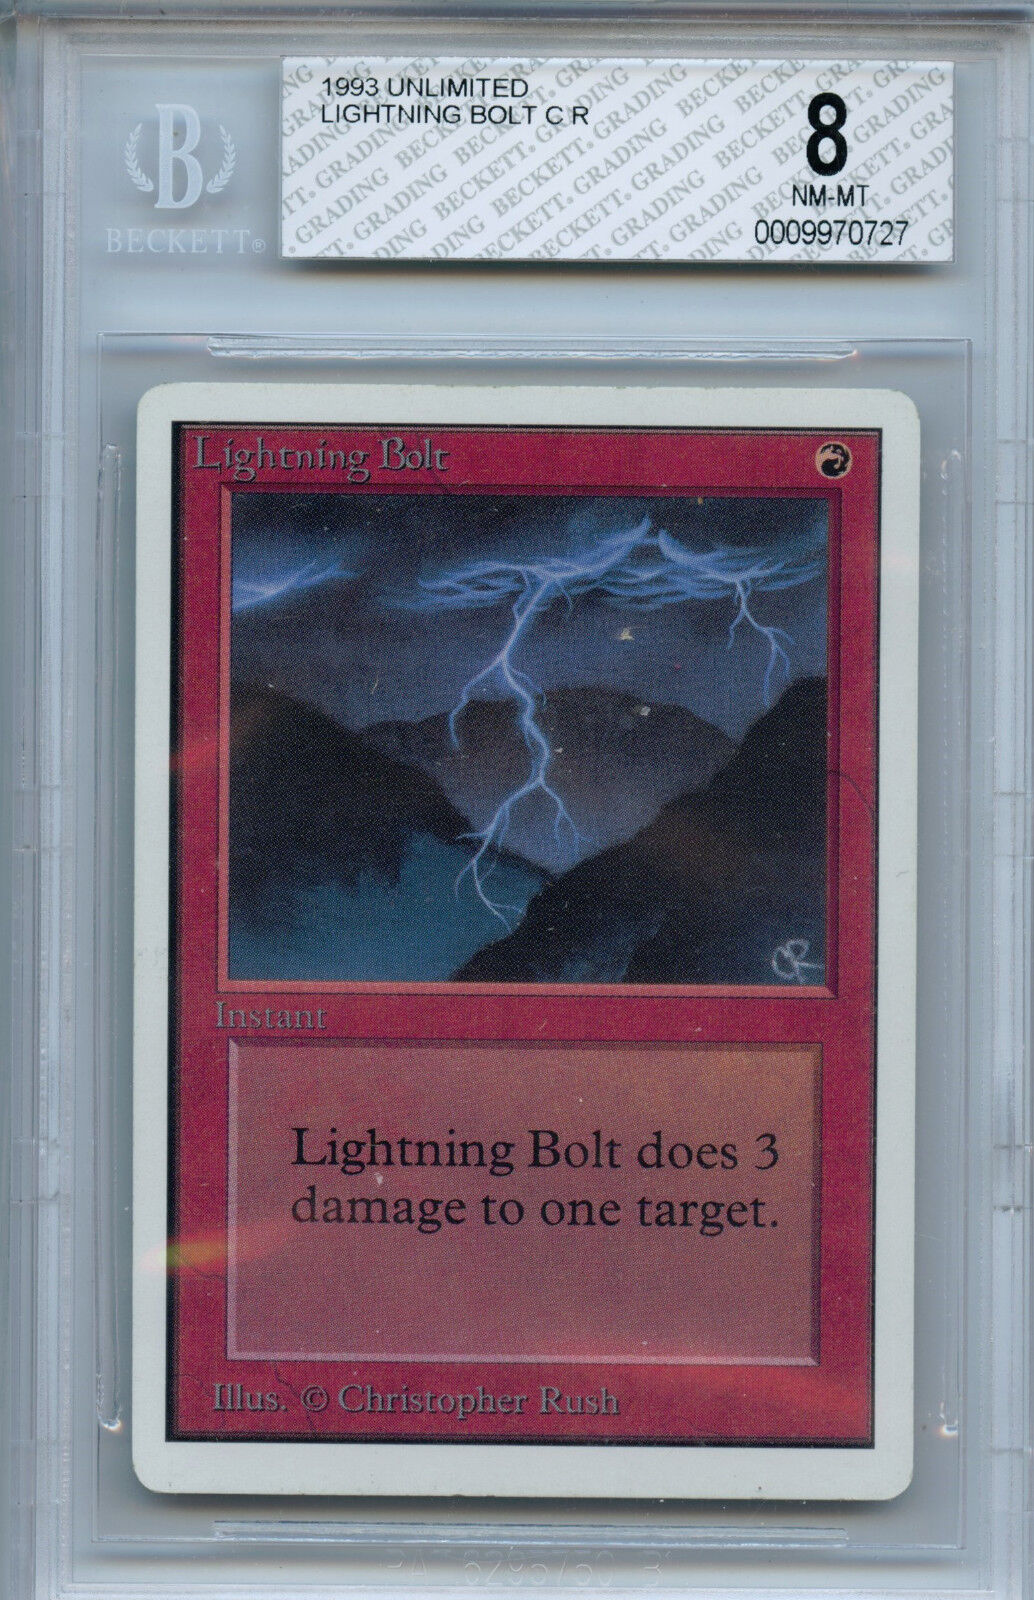 MTG Unlimited Lightning Bolt BGS 8.0 Magic the Gathering WOTC Card 0727